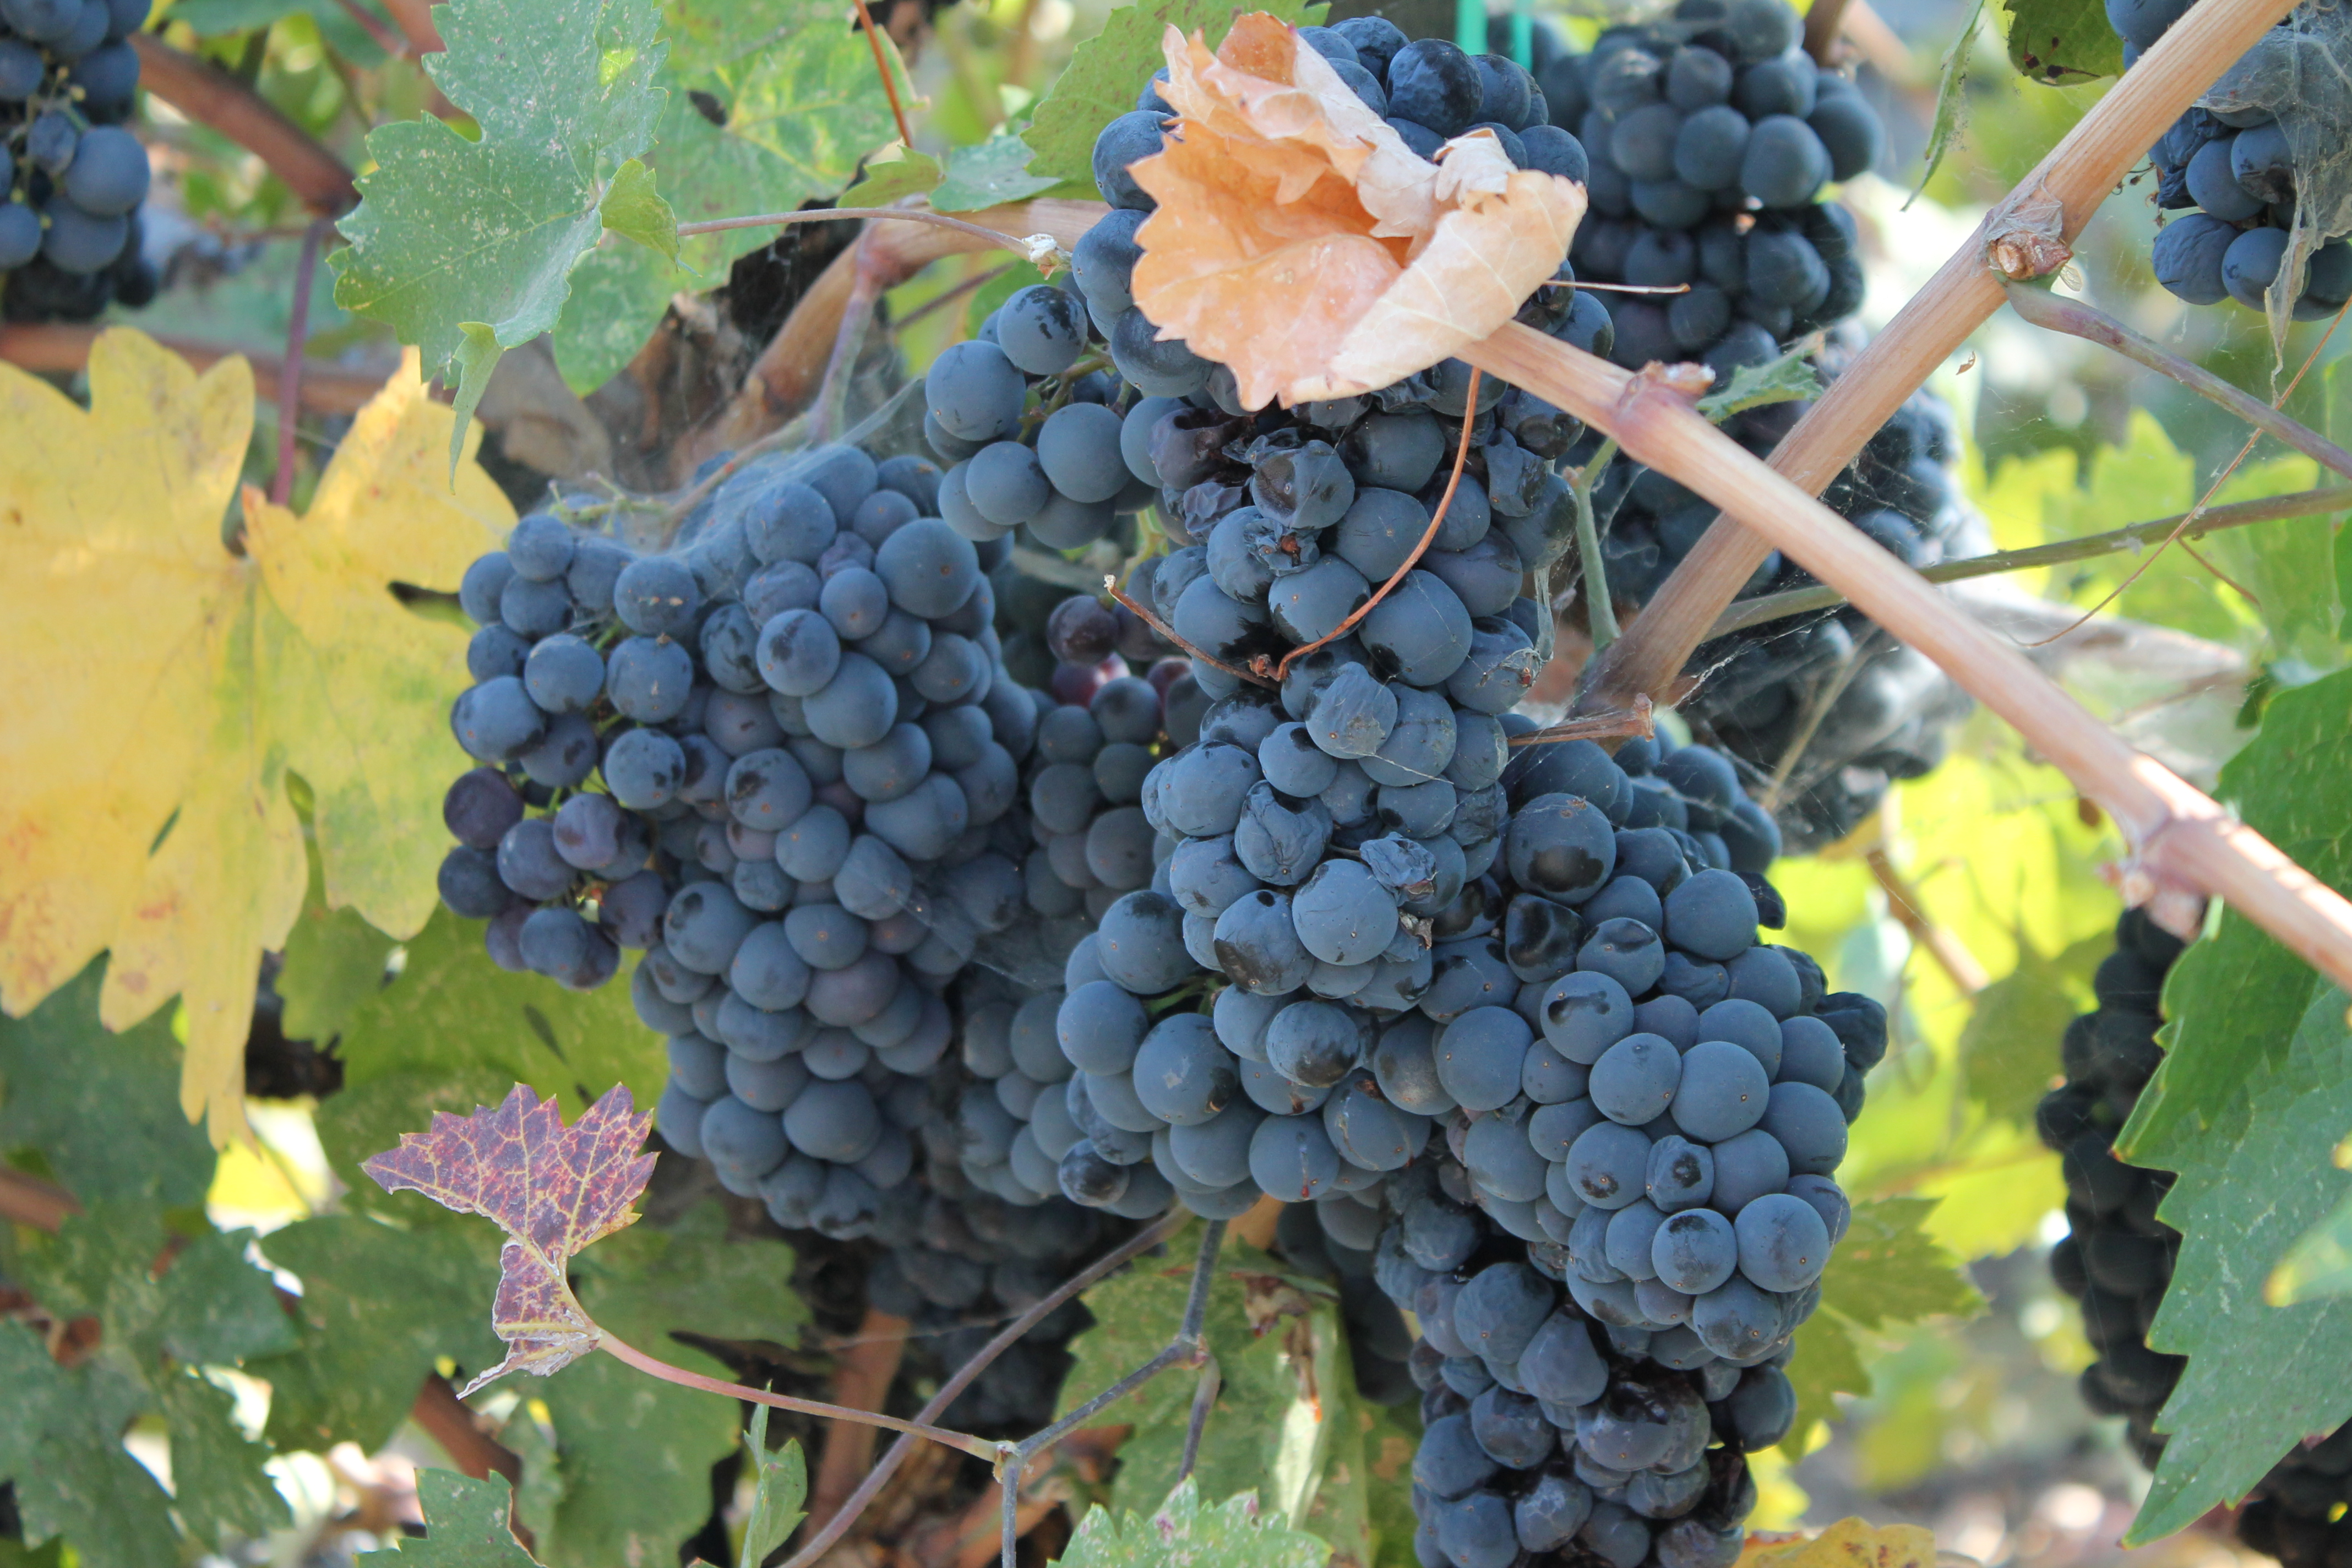 Zinfandel grapes ready to harvest at Charter Oak Winery in St. Helena, California. (Photo: Super G)